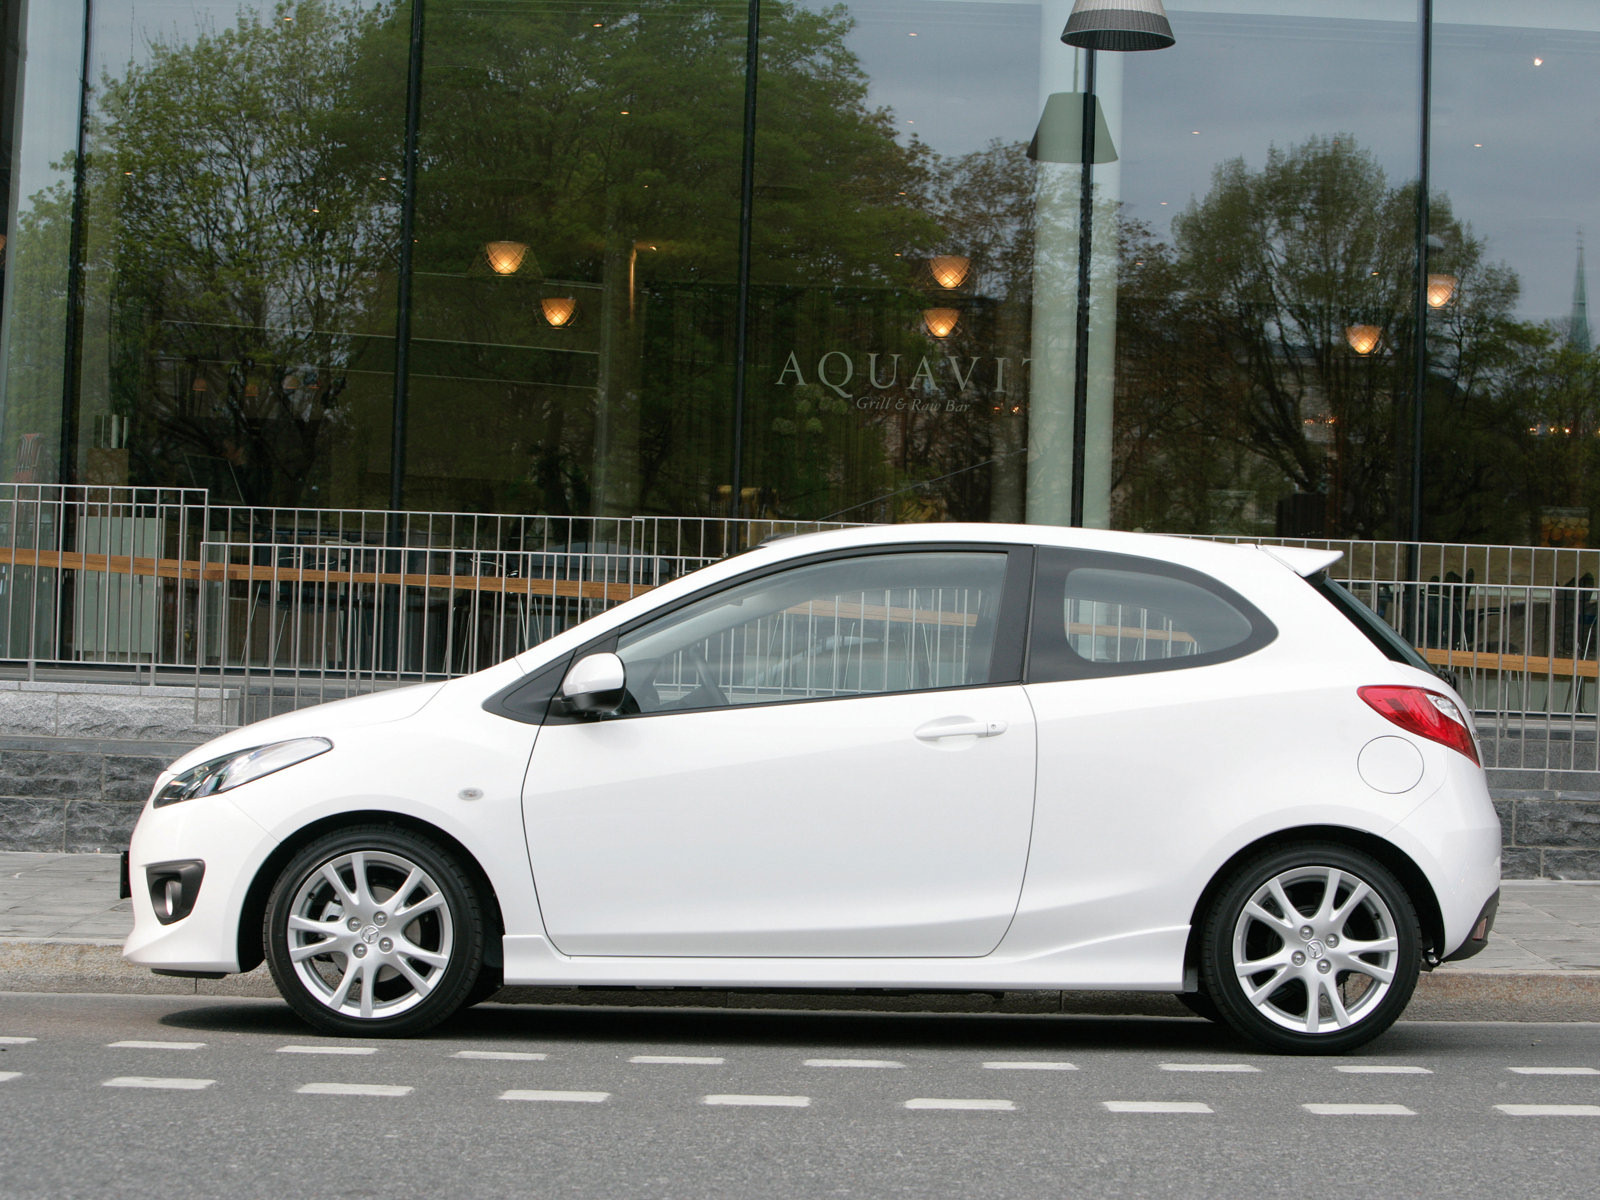 mazda 2 sport 3door 2008 mazda 2 sport 3door 2008 photo 14 car in pictures car photo gallery. Black Bedroom Furniture Sets. Home Design Ideas